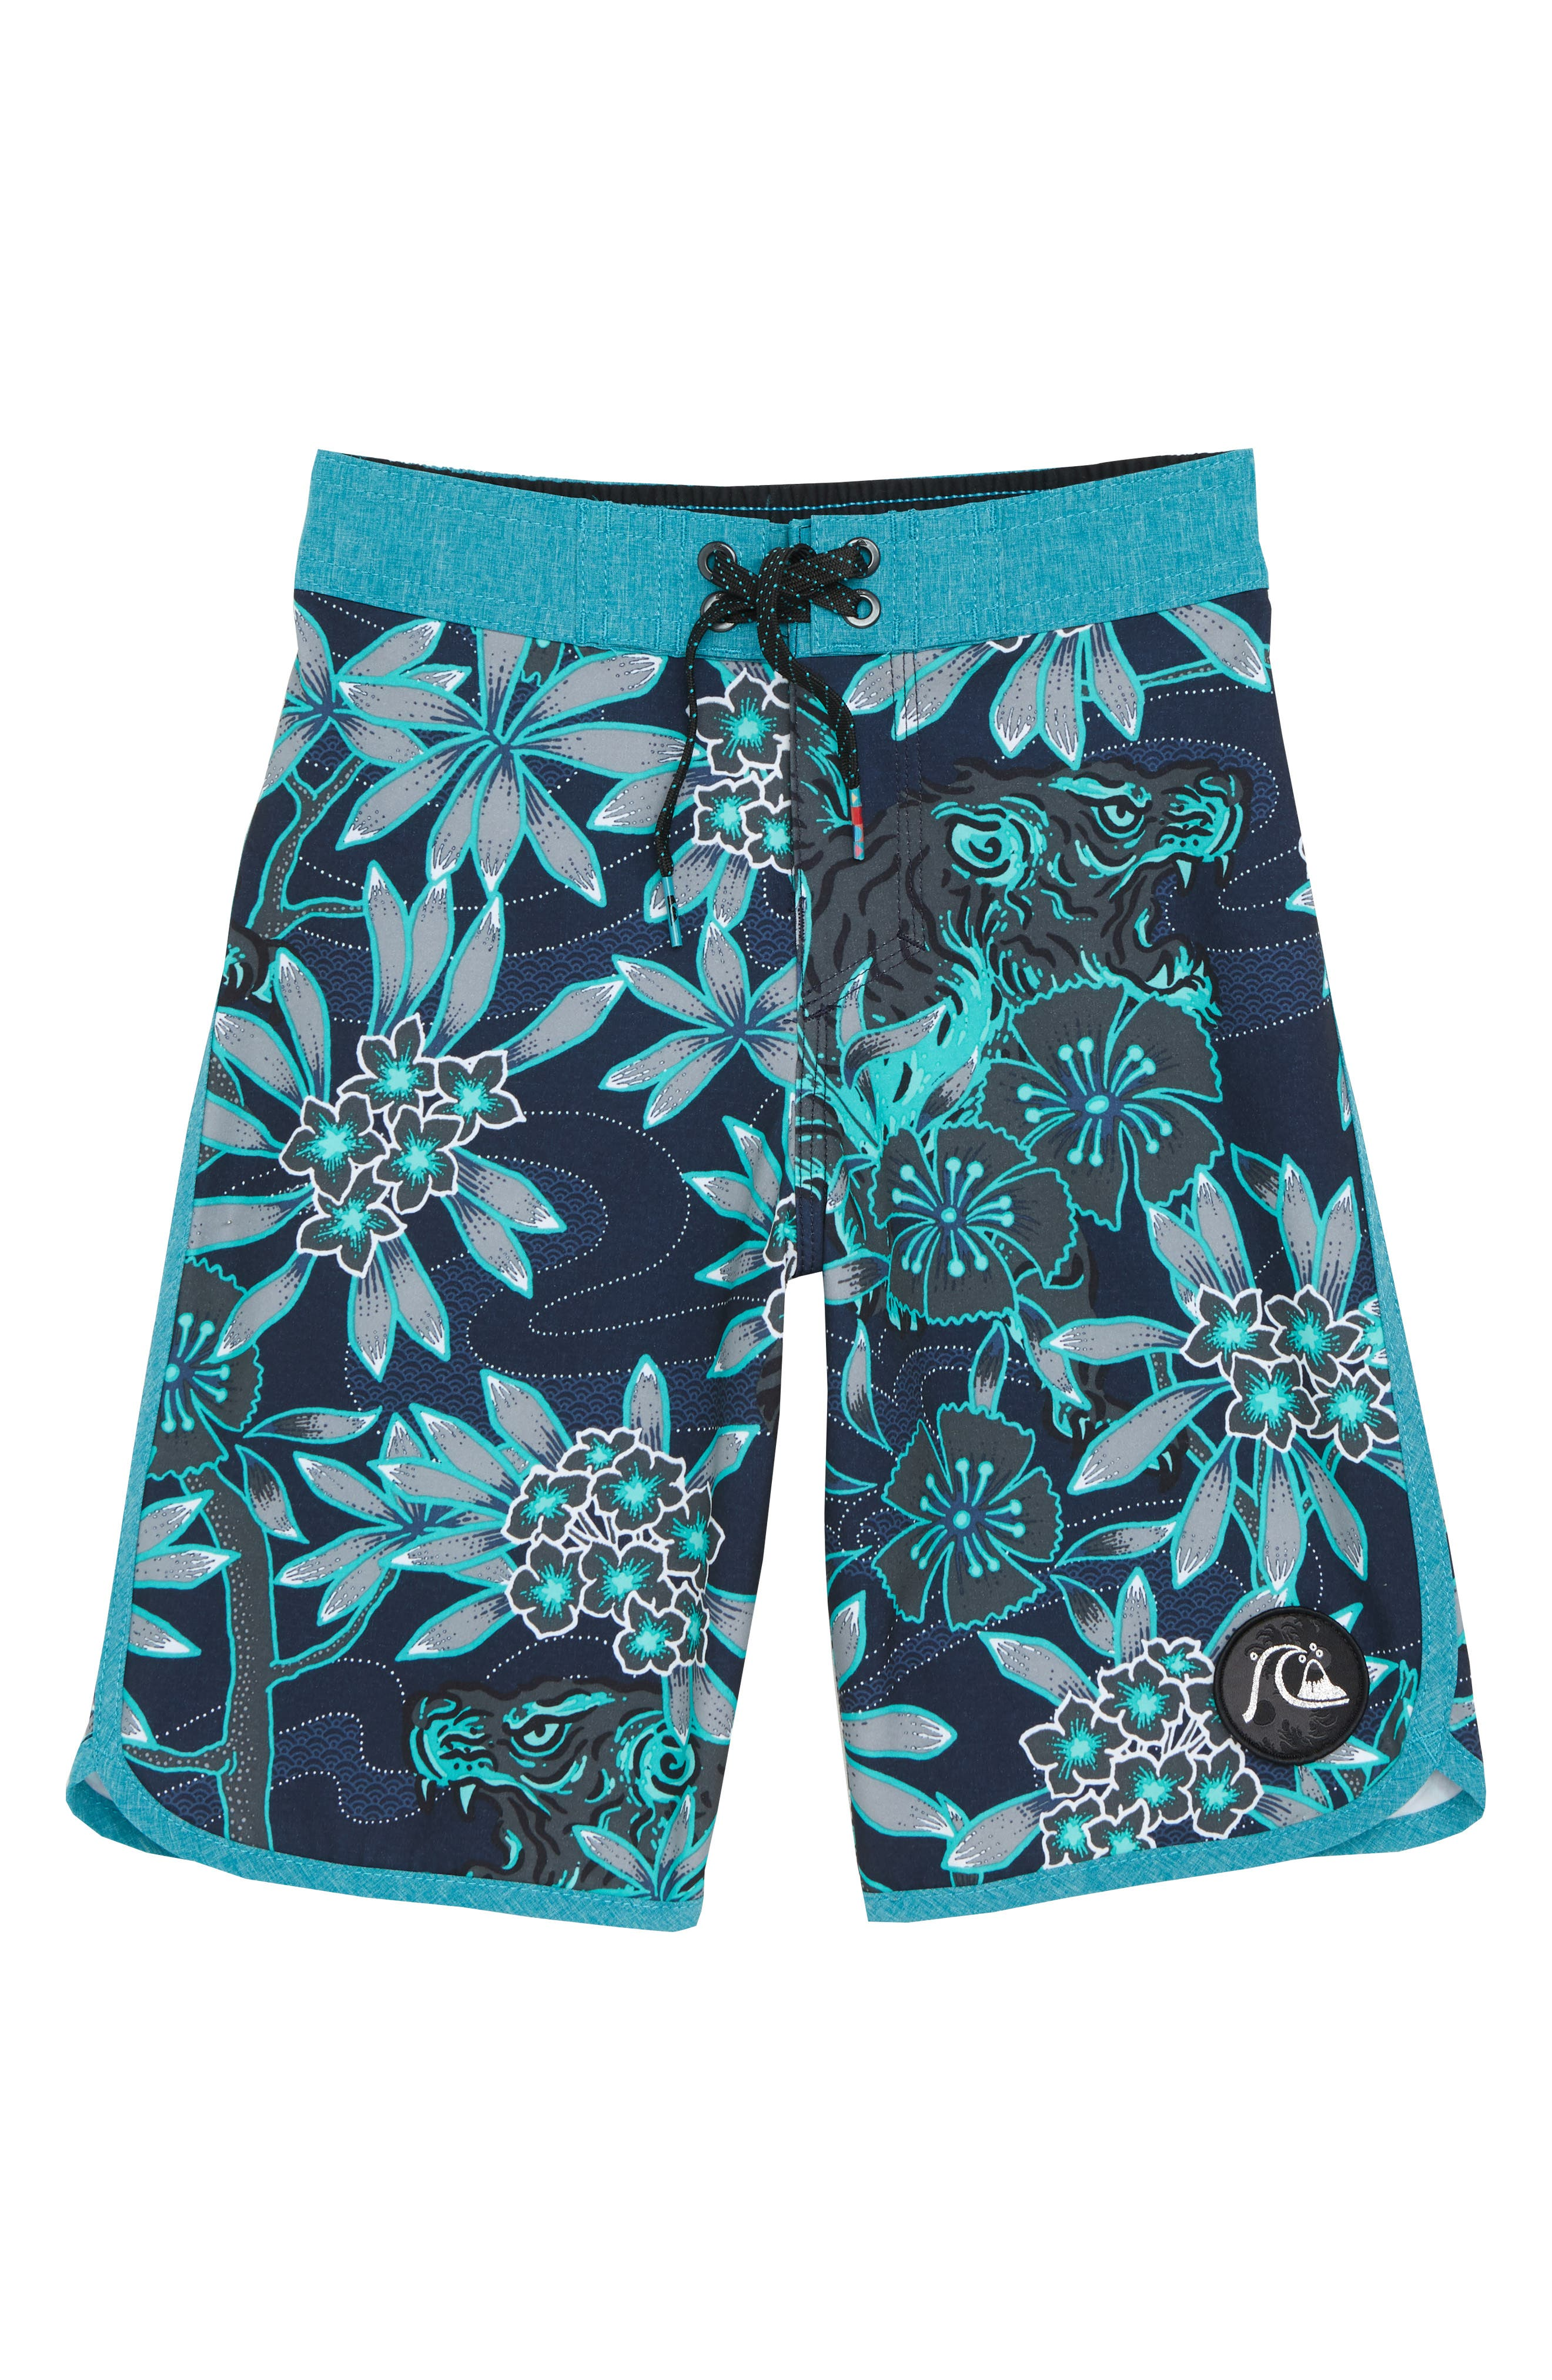 Highline Silent Fury Board Shorts,                         Main,                         color, TYPHOON